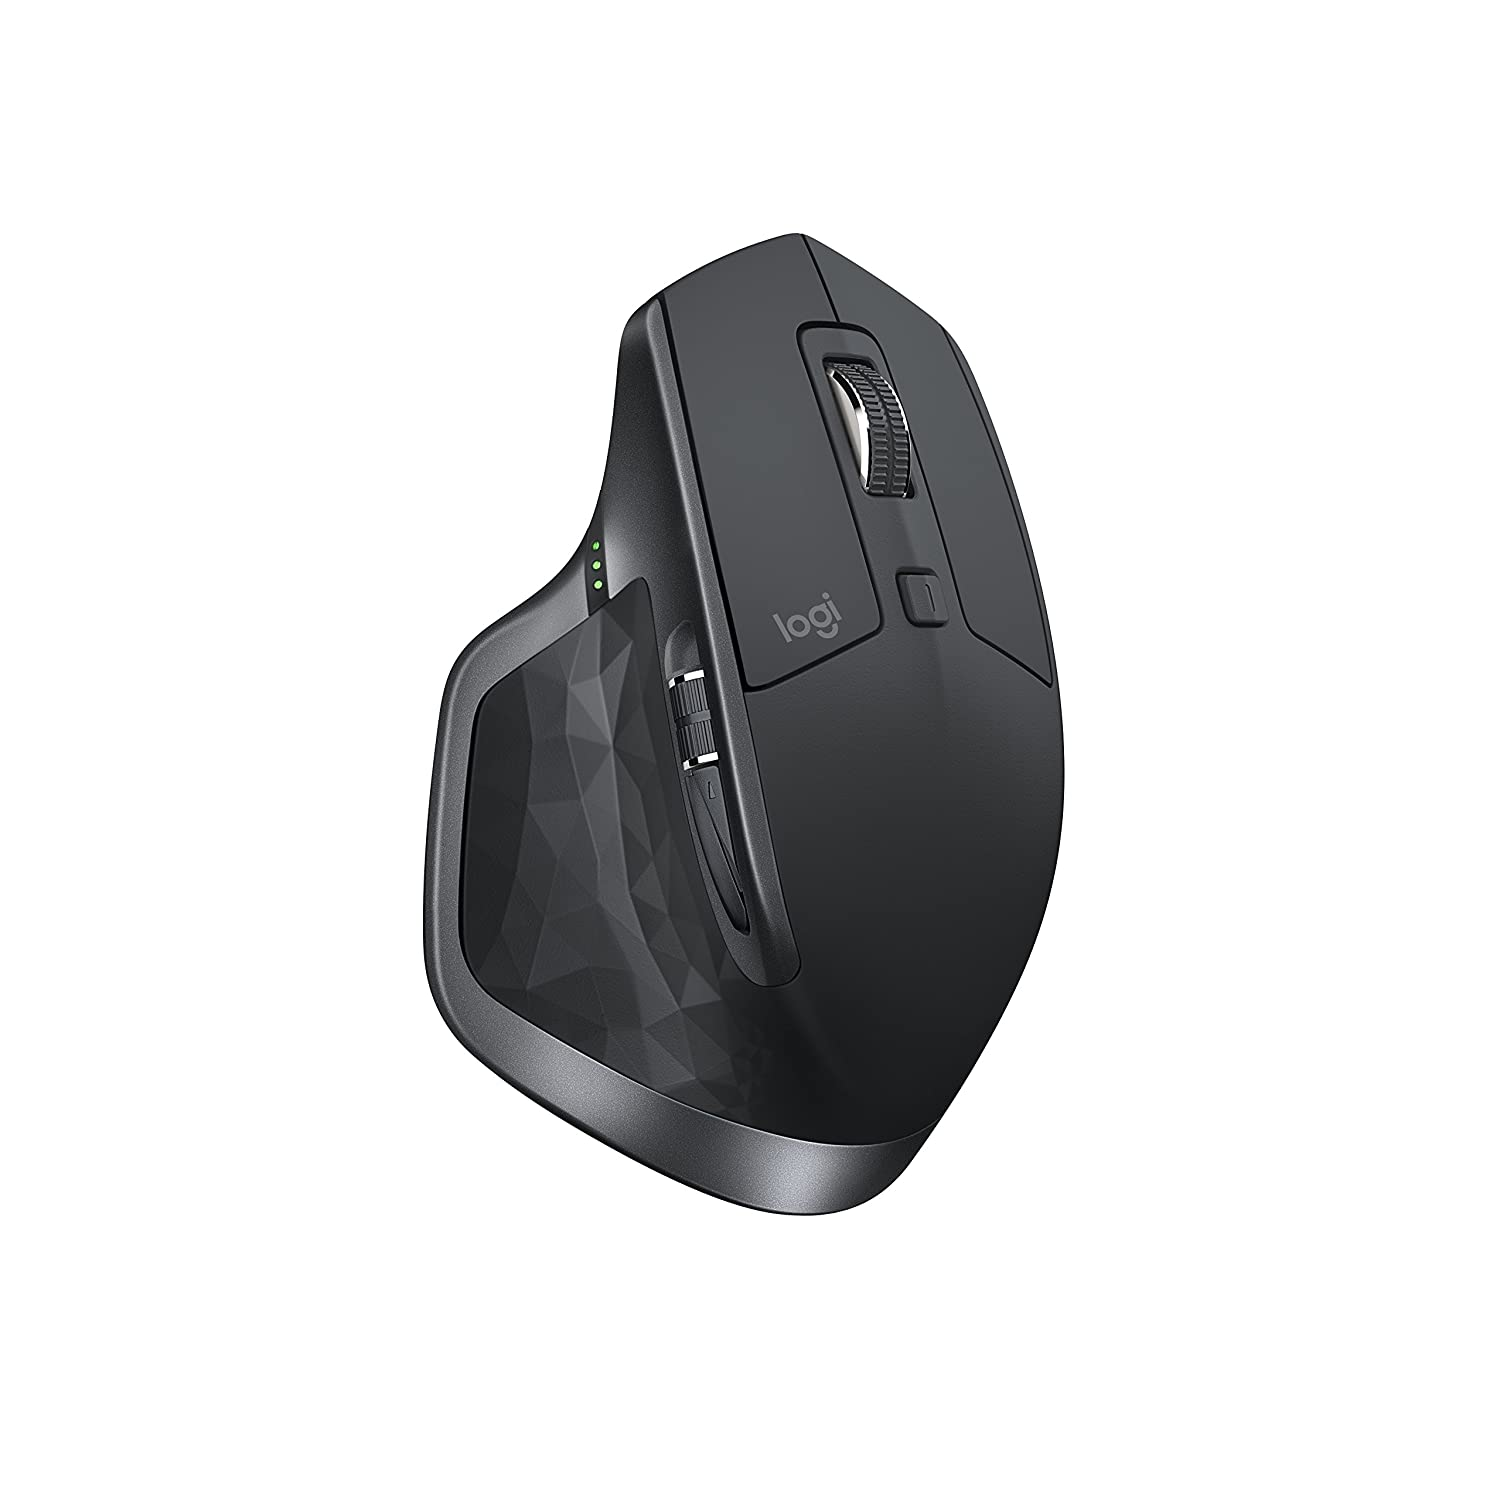 Best Mouse For Photo Editing In Photoshop